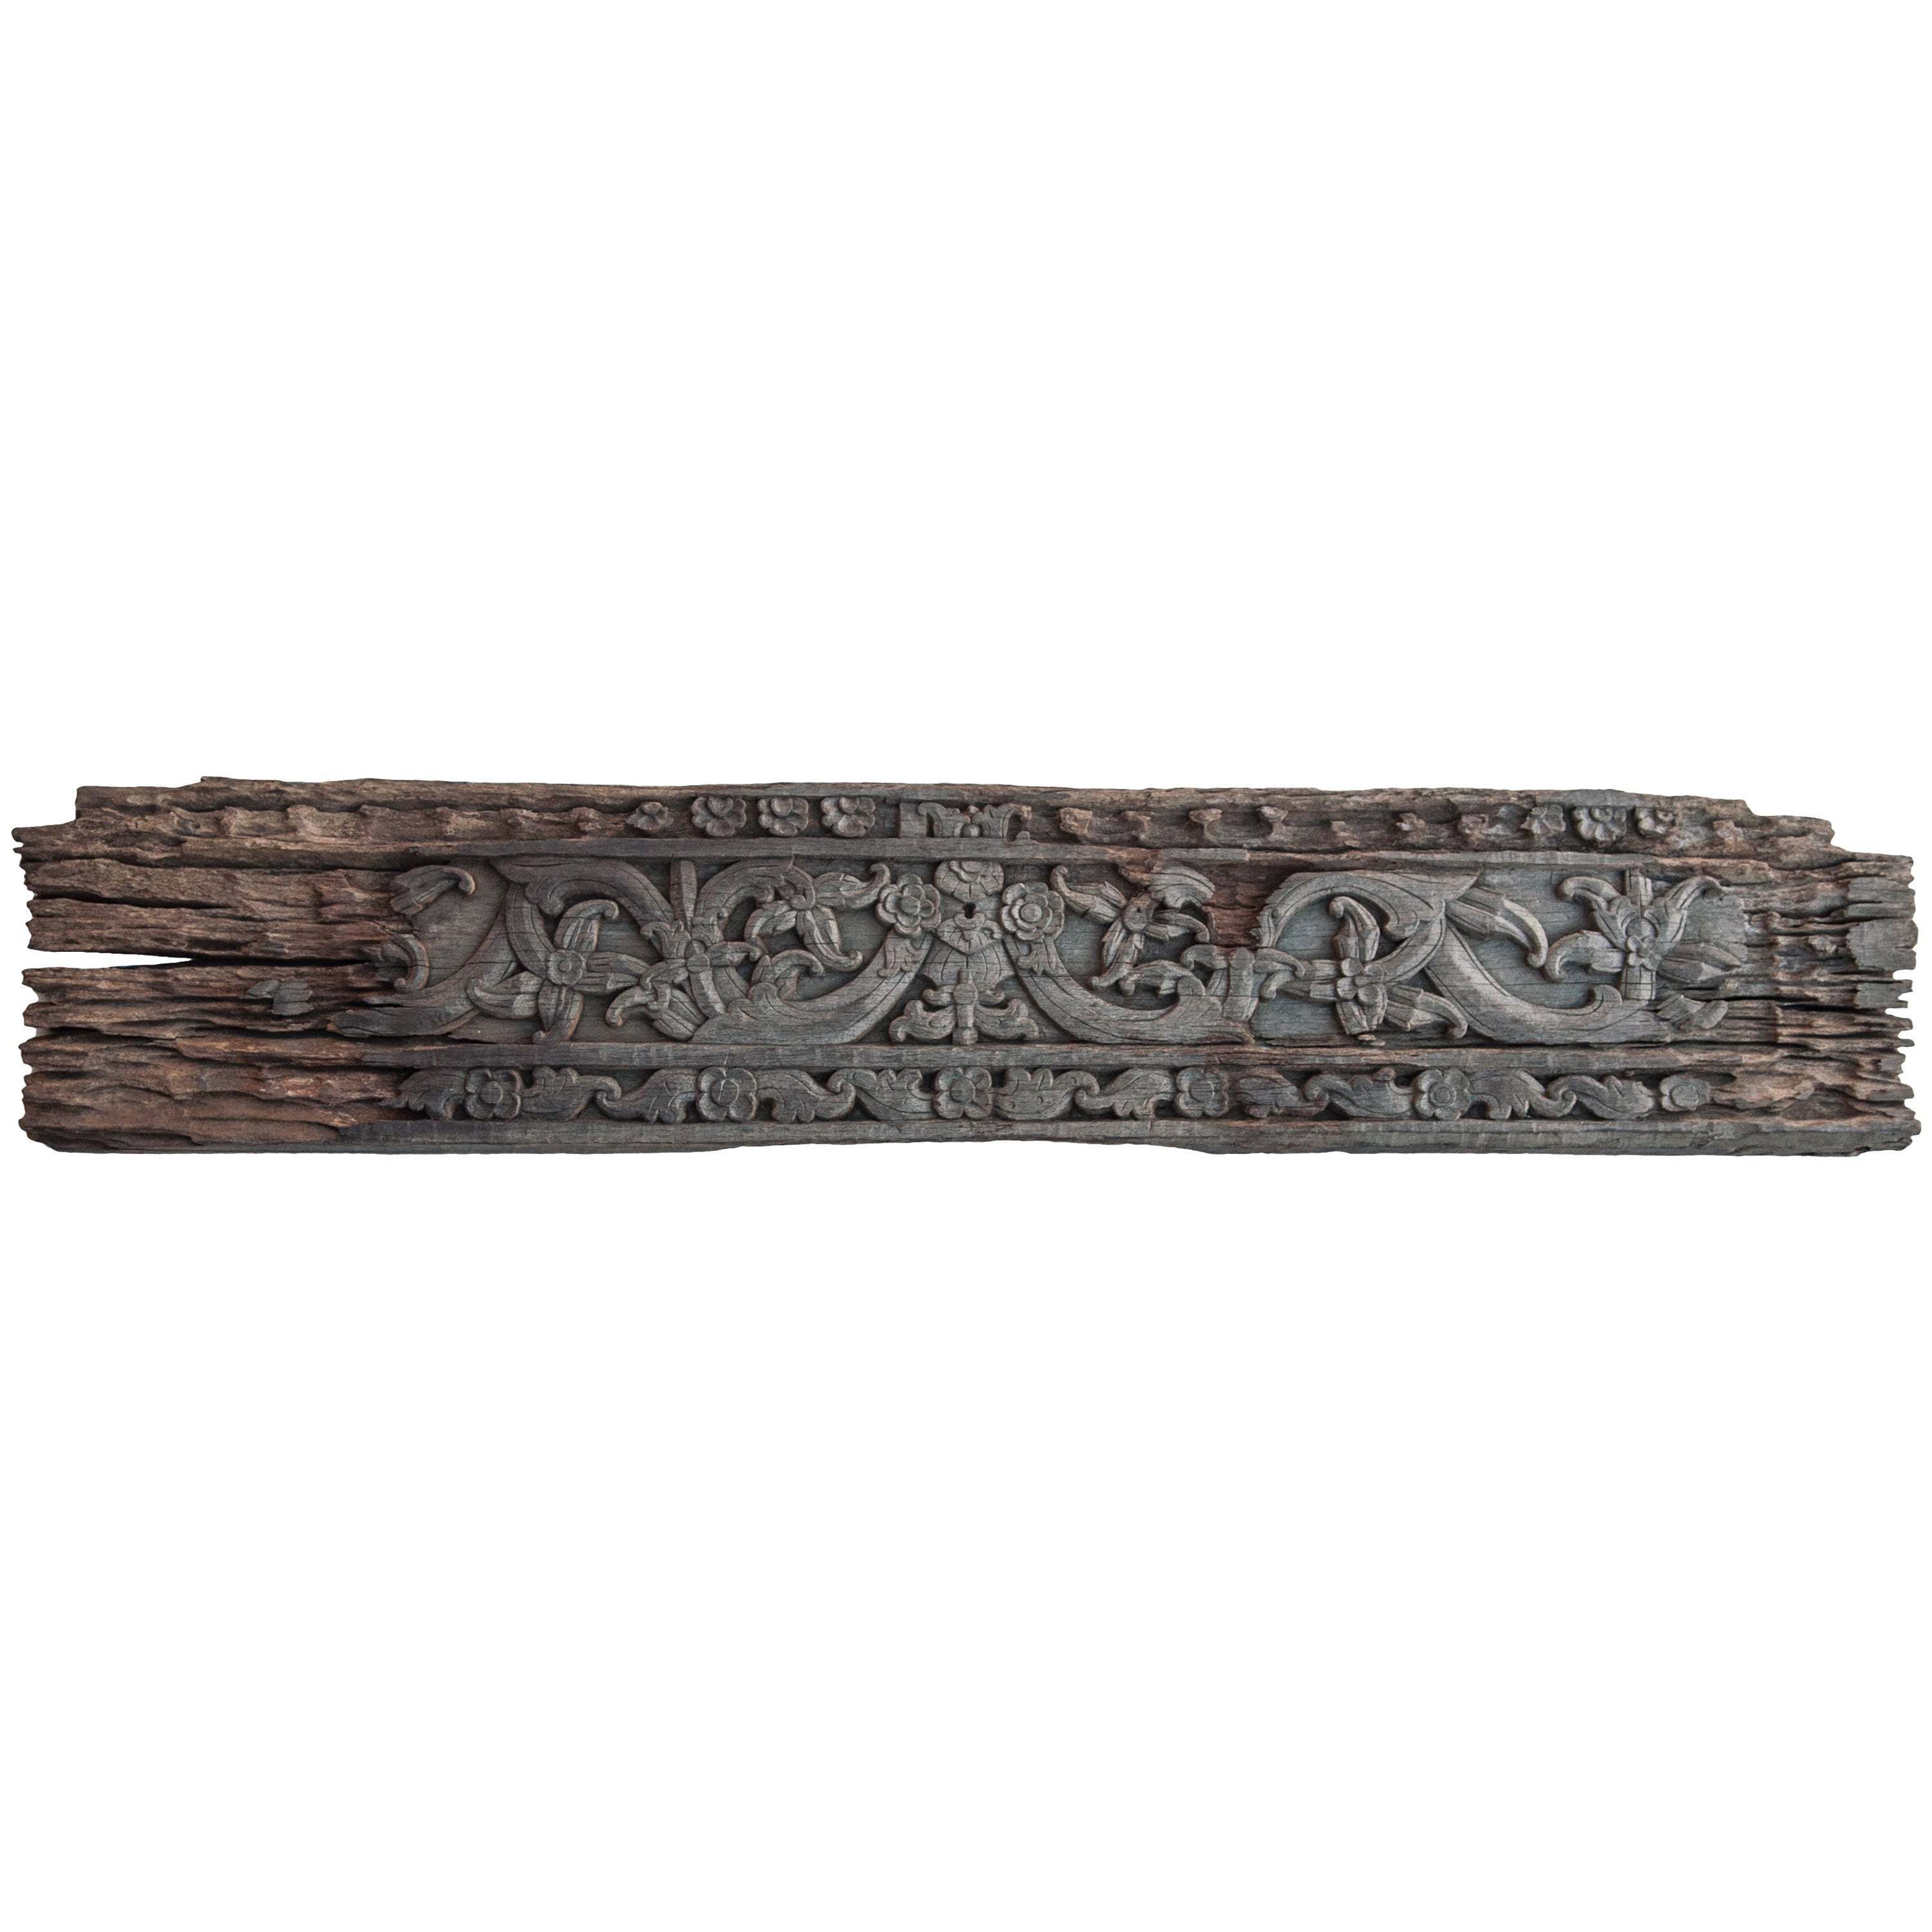 Vintage Carved Ironwood Panel with Floral Motif, Borneo, Mid-20th Century